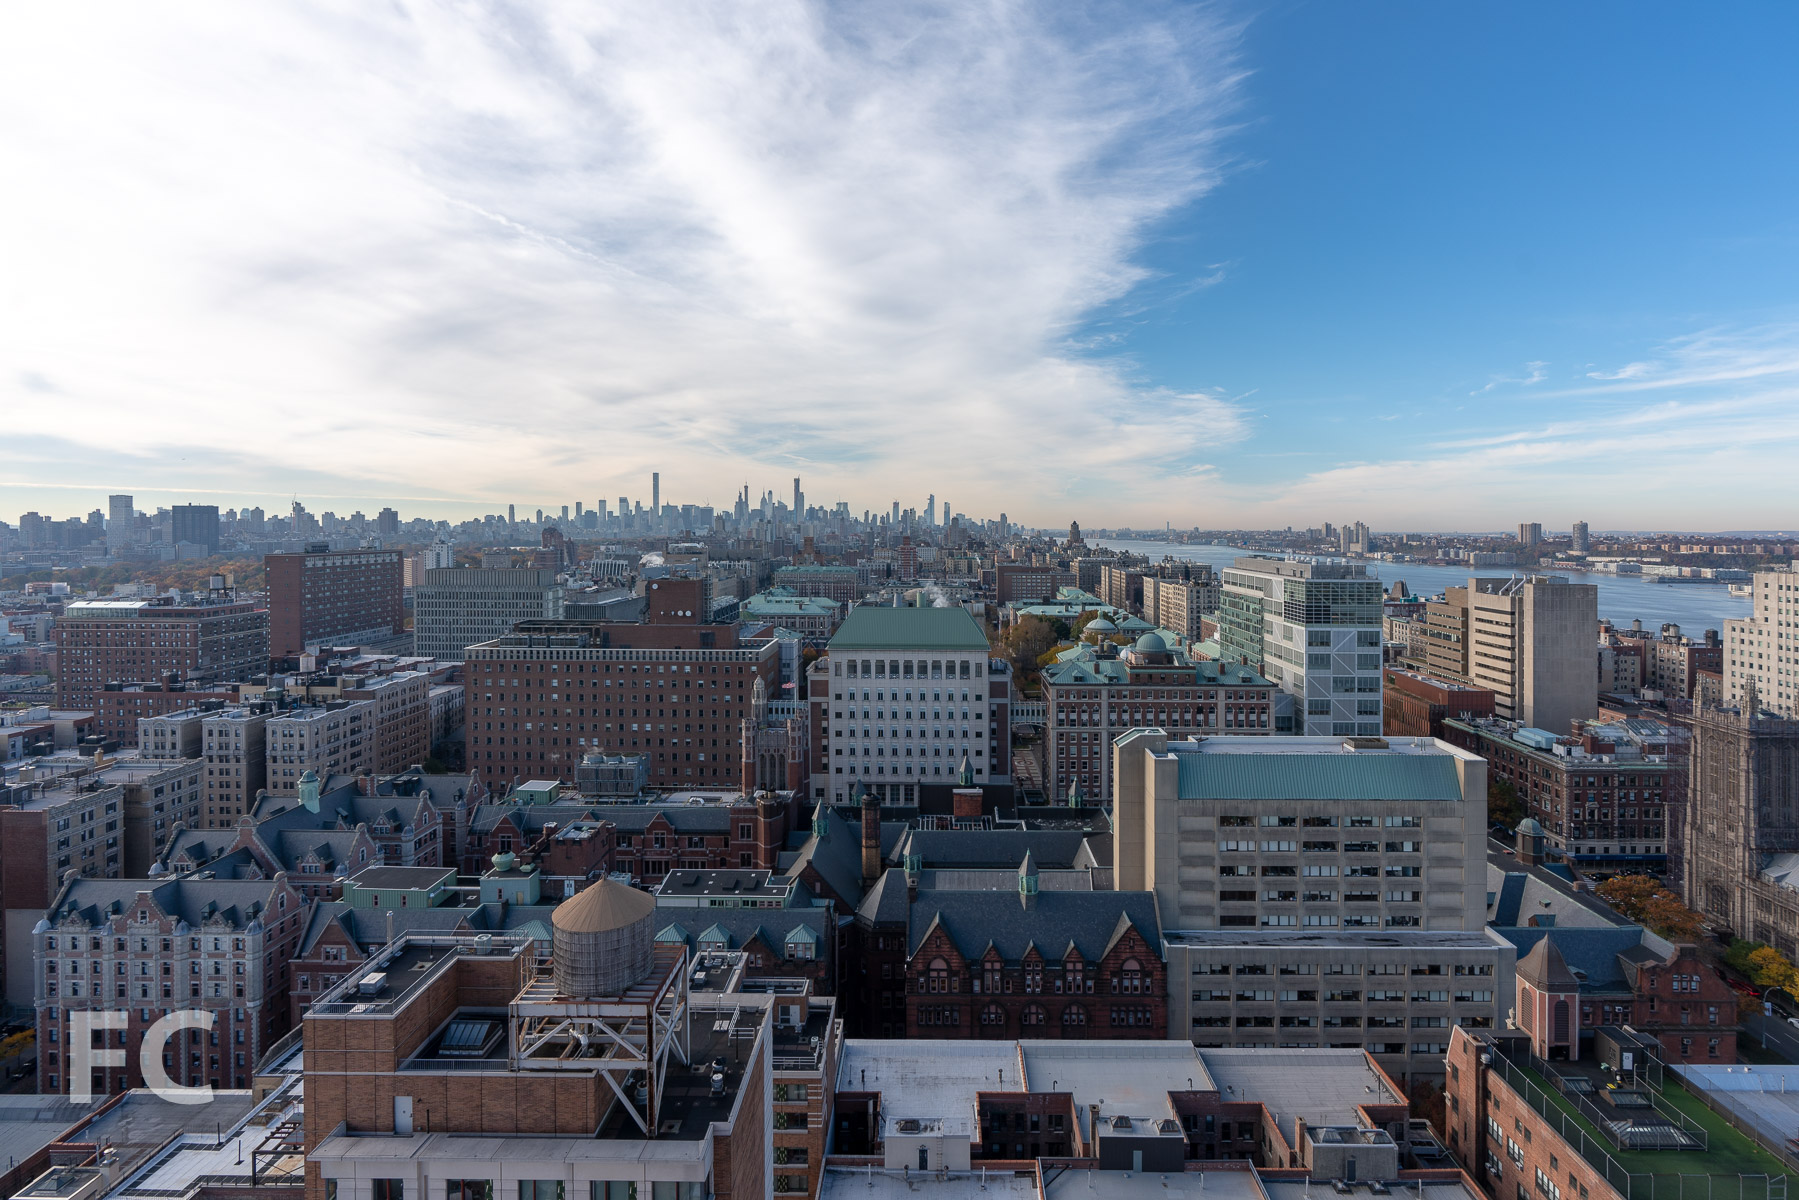 View south towards the Columbia University campus and Midtown from an upper floor.